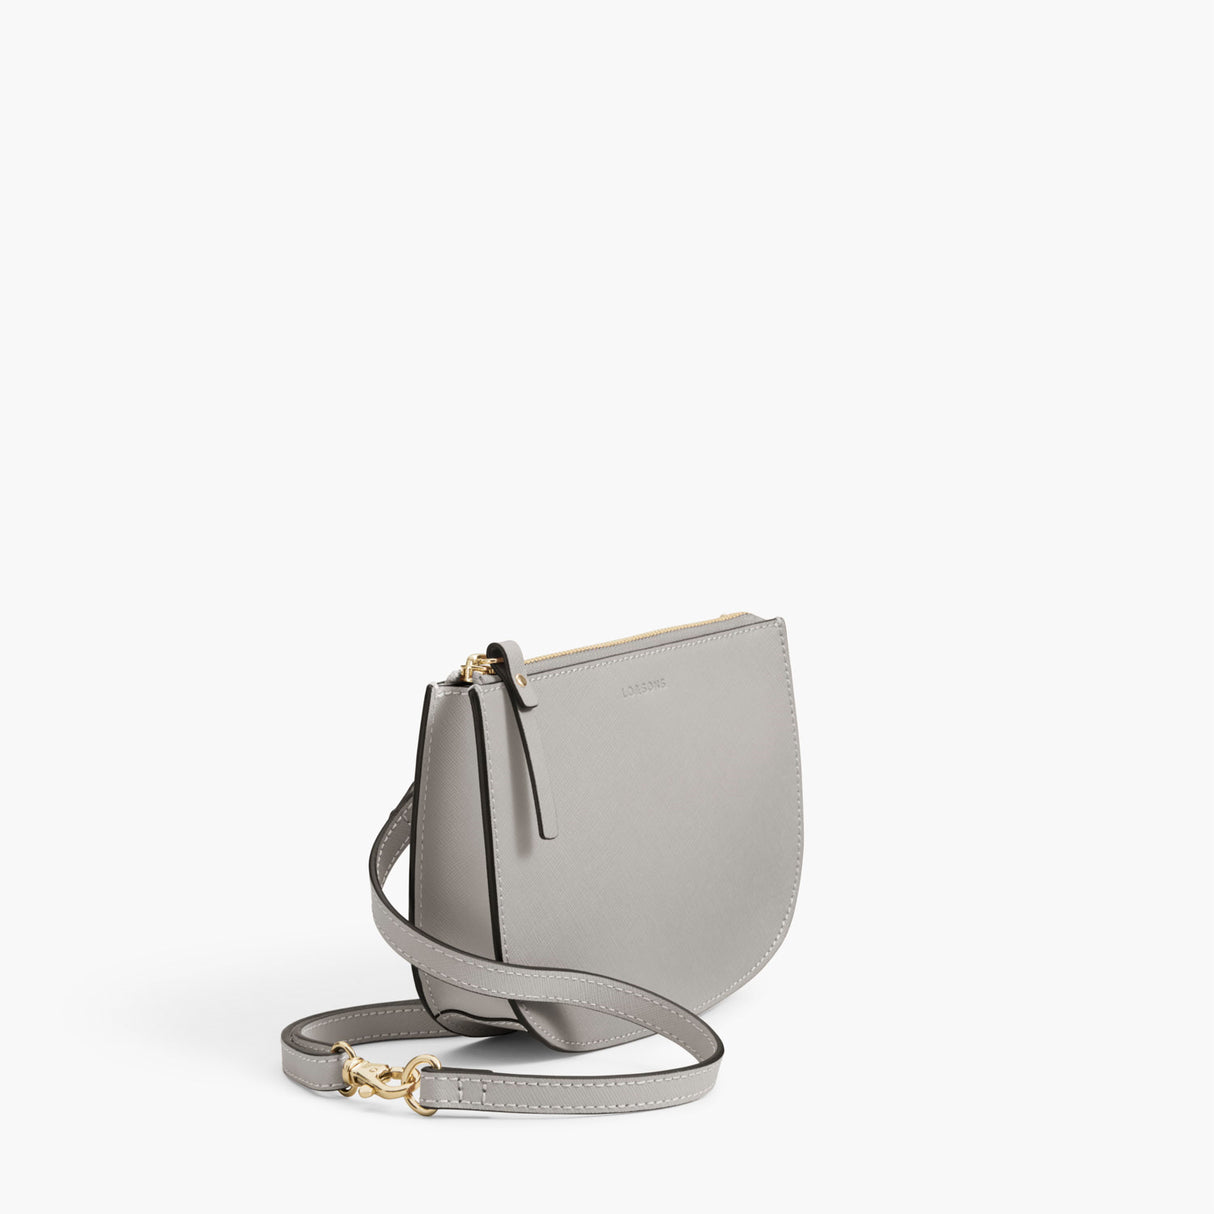 Side - The Waverley 2 - Saffiano Leather - Light Grey / Gold / Grey - Crossbody - Lo & Sons